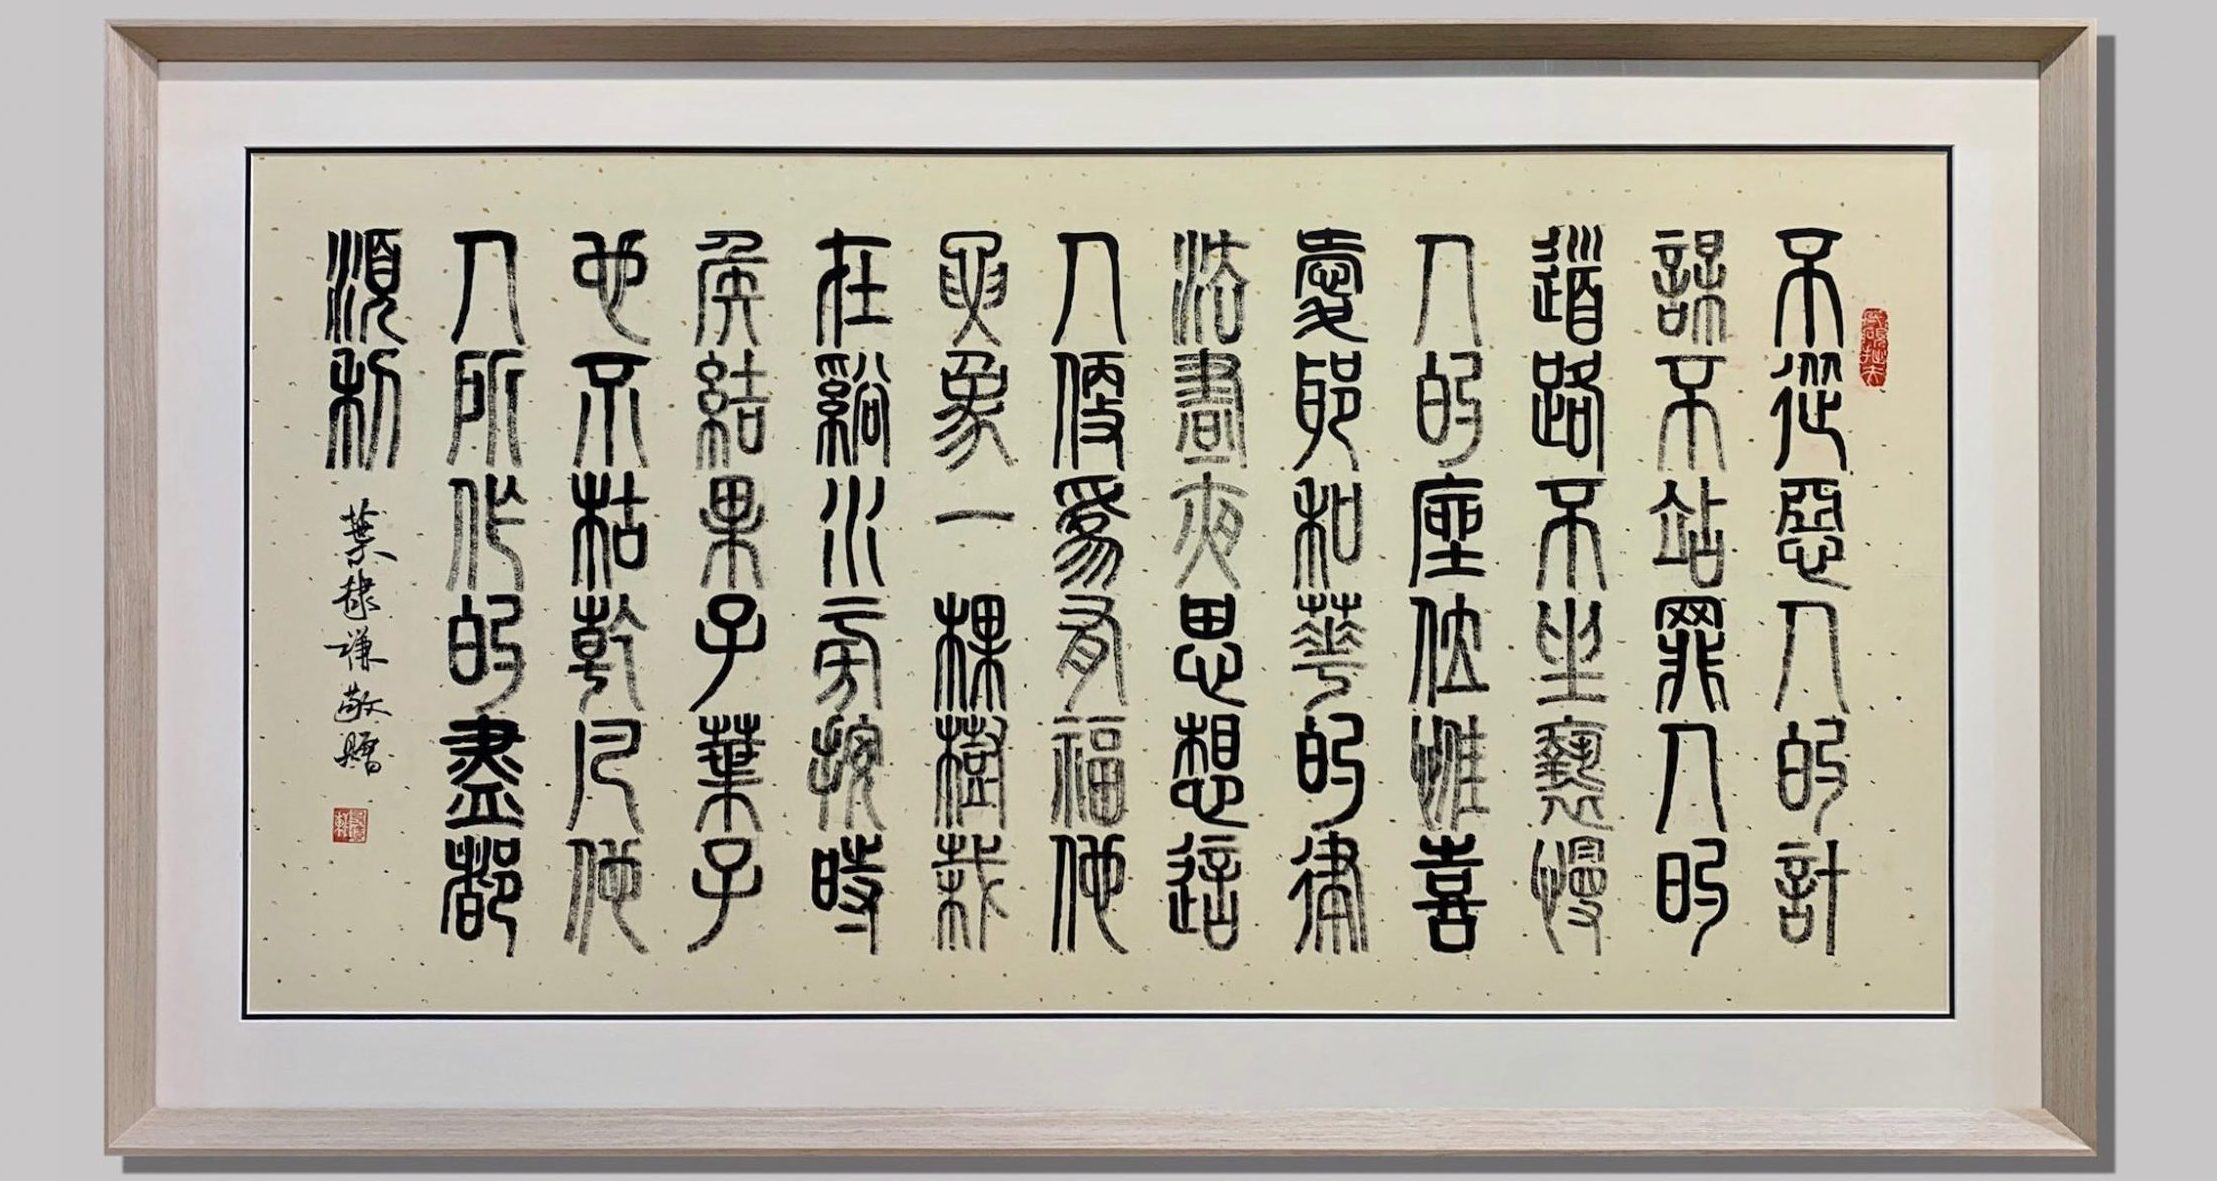 Chinese Calligraphy Rice Paper Art After Scroll Mounting Tuodi Matboard Border Birch Wood Frame